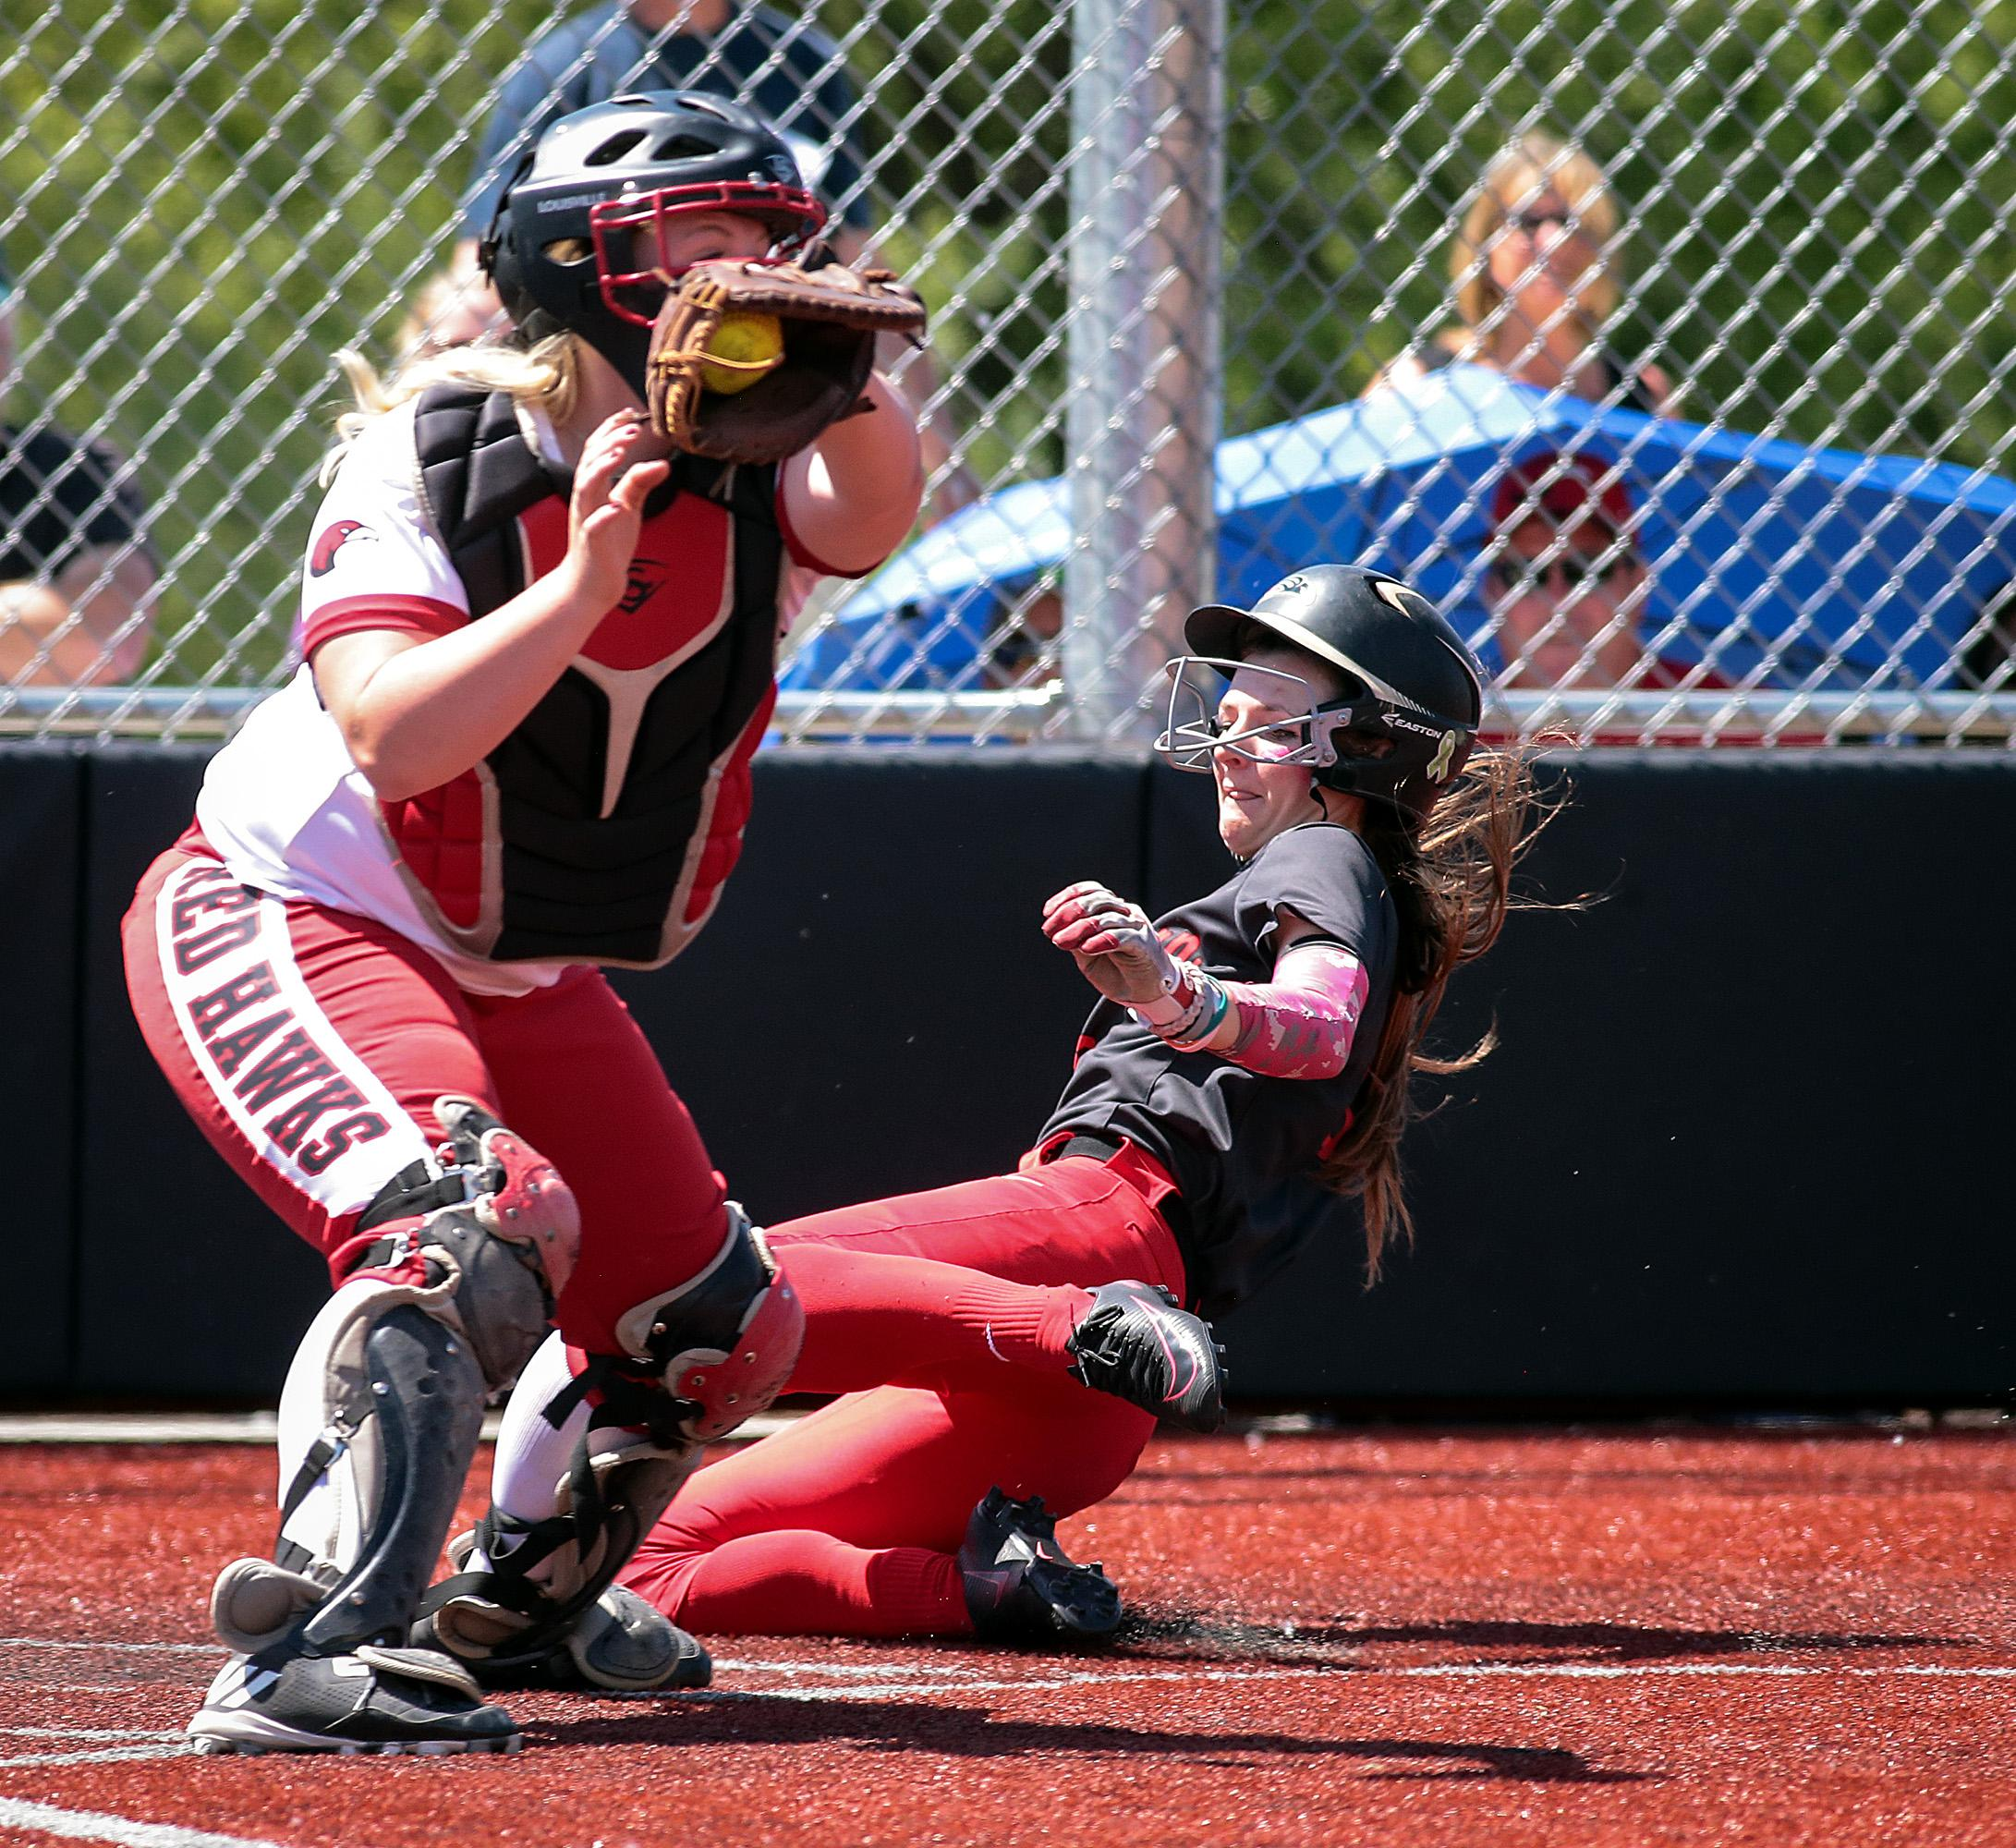 Southern Oregon University Kelsey Randall slides into home, for an In-the-Park Homerun, behind Simpson University catcher Kayla Bailey at US Cellular Fields on Monday.[PHOTO BY:  LARRY STAUTH JR]